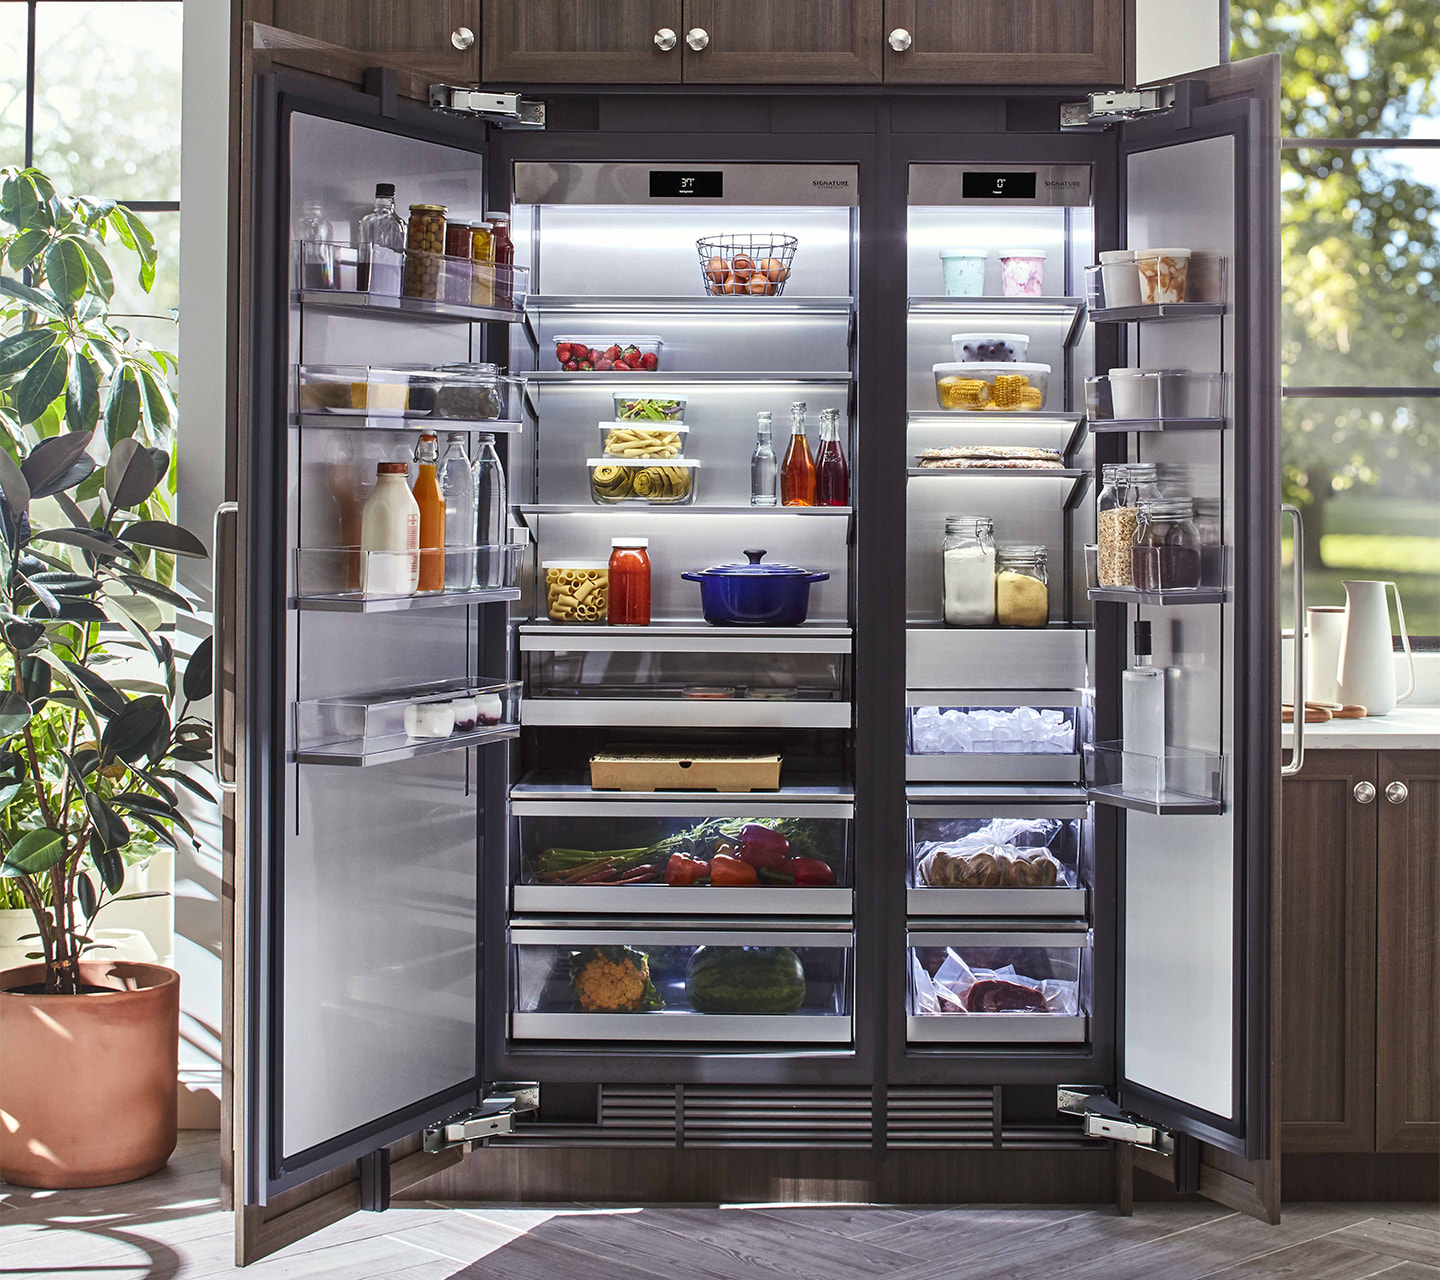 signature kitchen warehouse sale how to redo cabinets 18 quot integrated column freezer built in and panel ready